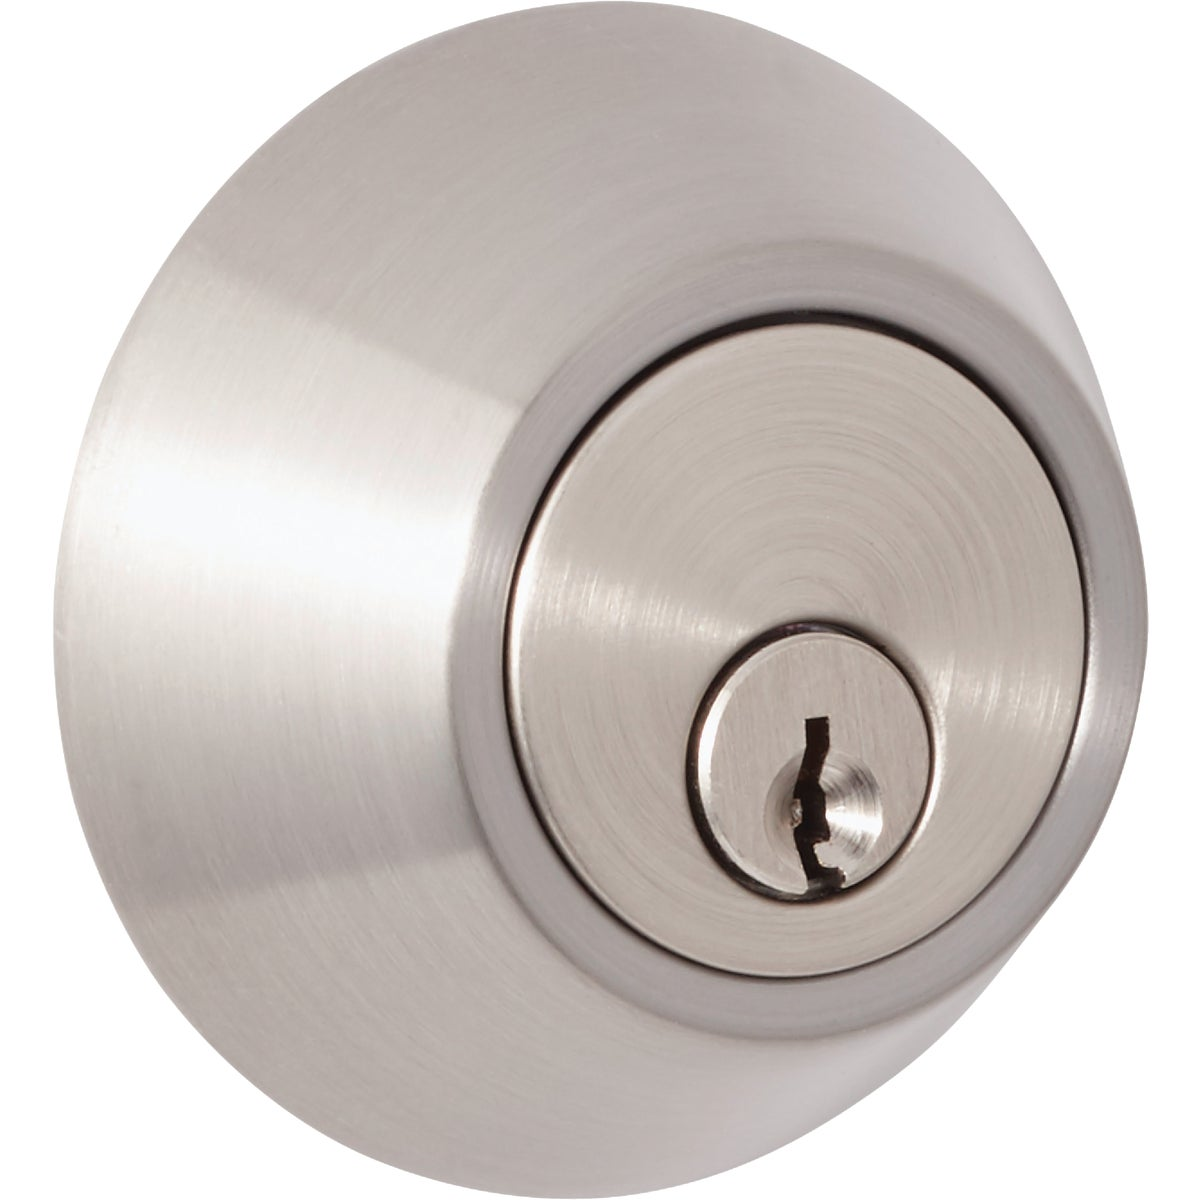 SN CP 1CYL DEADBOLT - D101SN CP by Do it Best